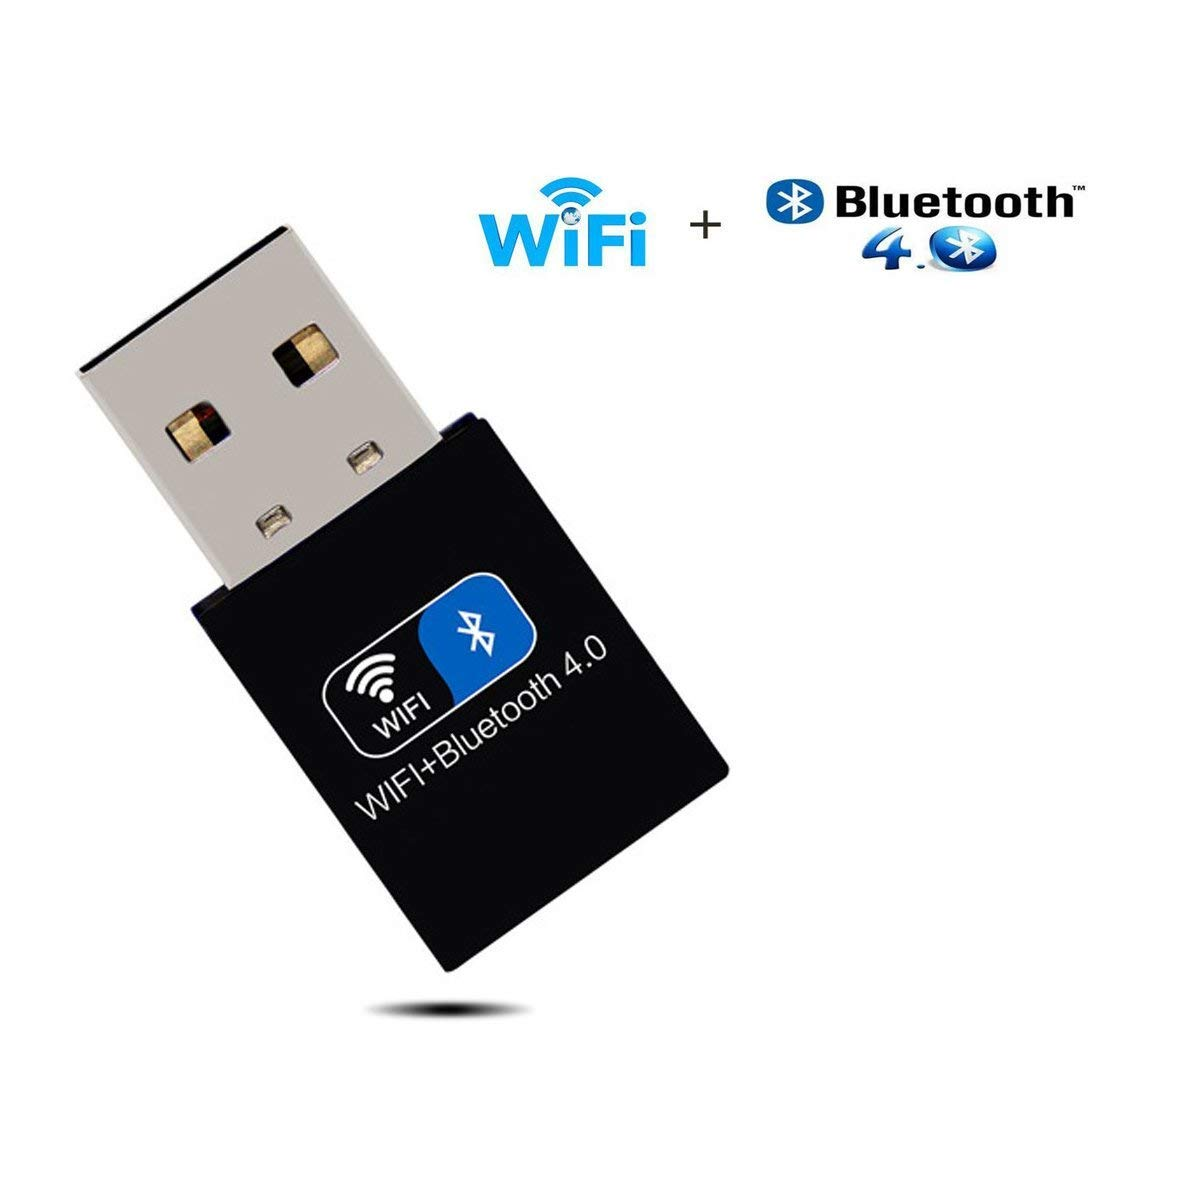 iFun4U adaptador USB WiFi adaptador Bluetooth velocidad de hasta 150 Mbps para PC y portátiles, compatible con Win 7/8/8.1/10/XP/Vista/Linux: Amazon.es: ...